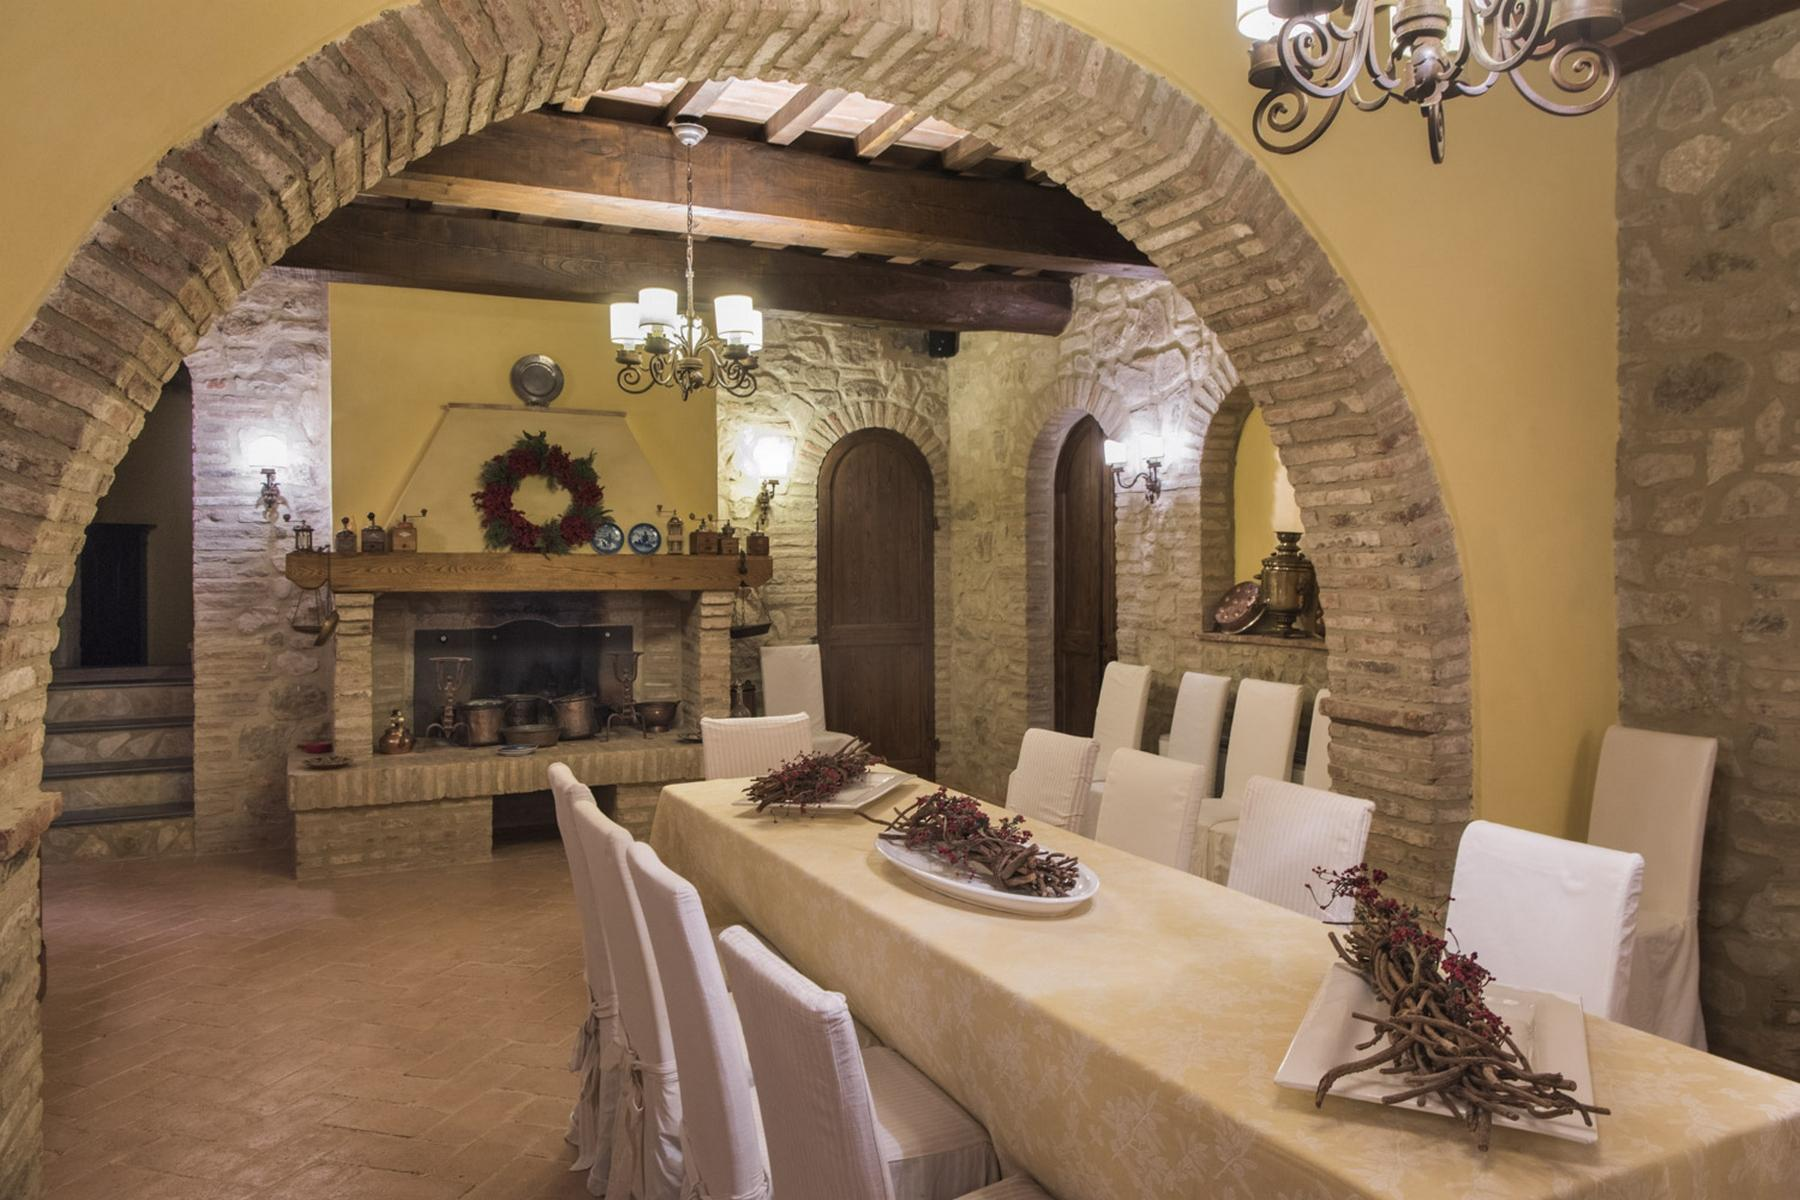 Marvellous property in the heart of Umbria Region - 5